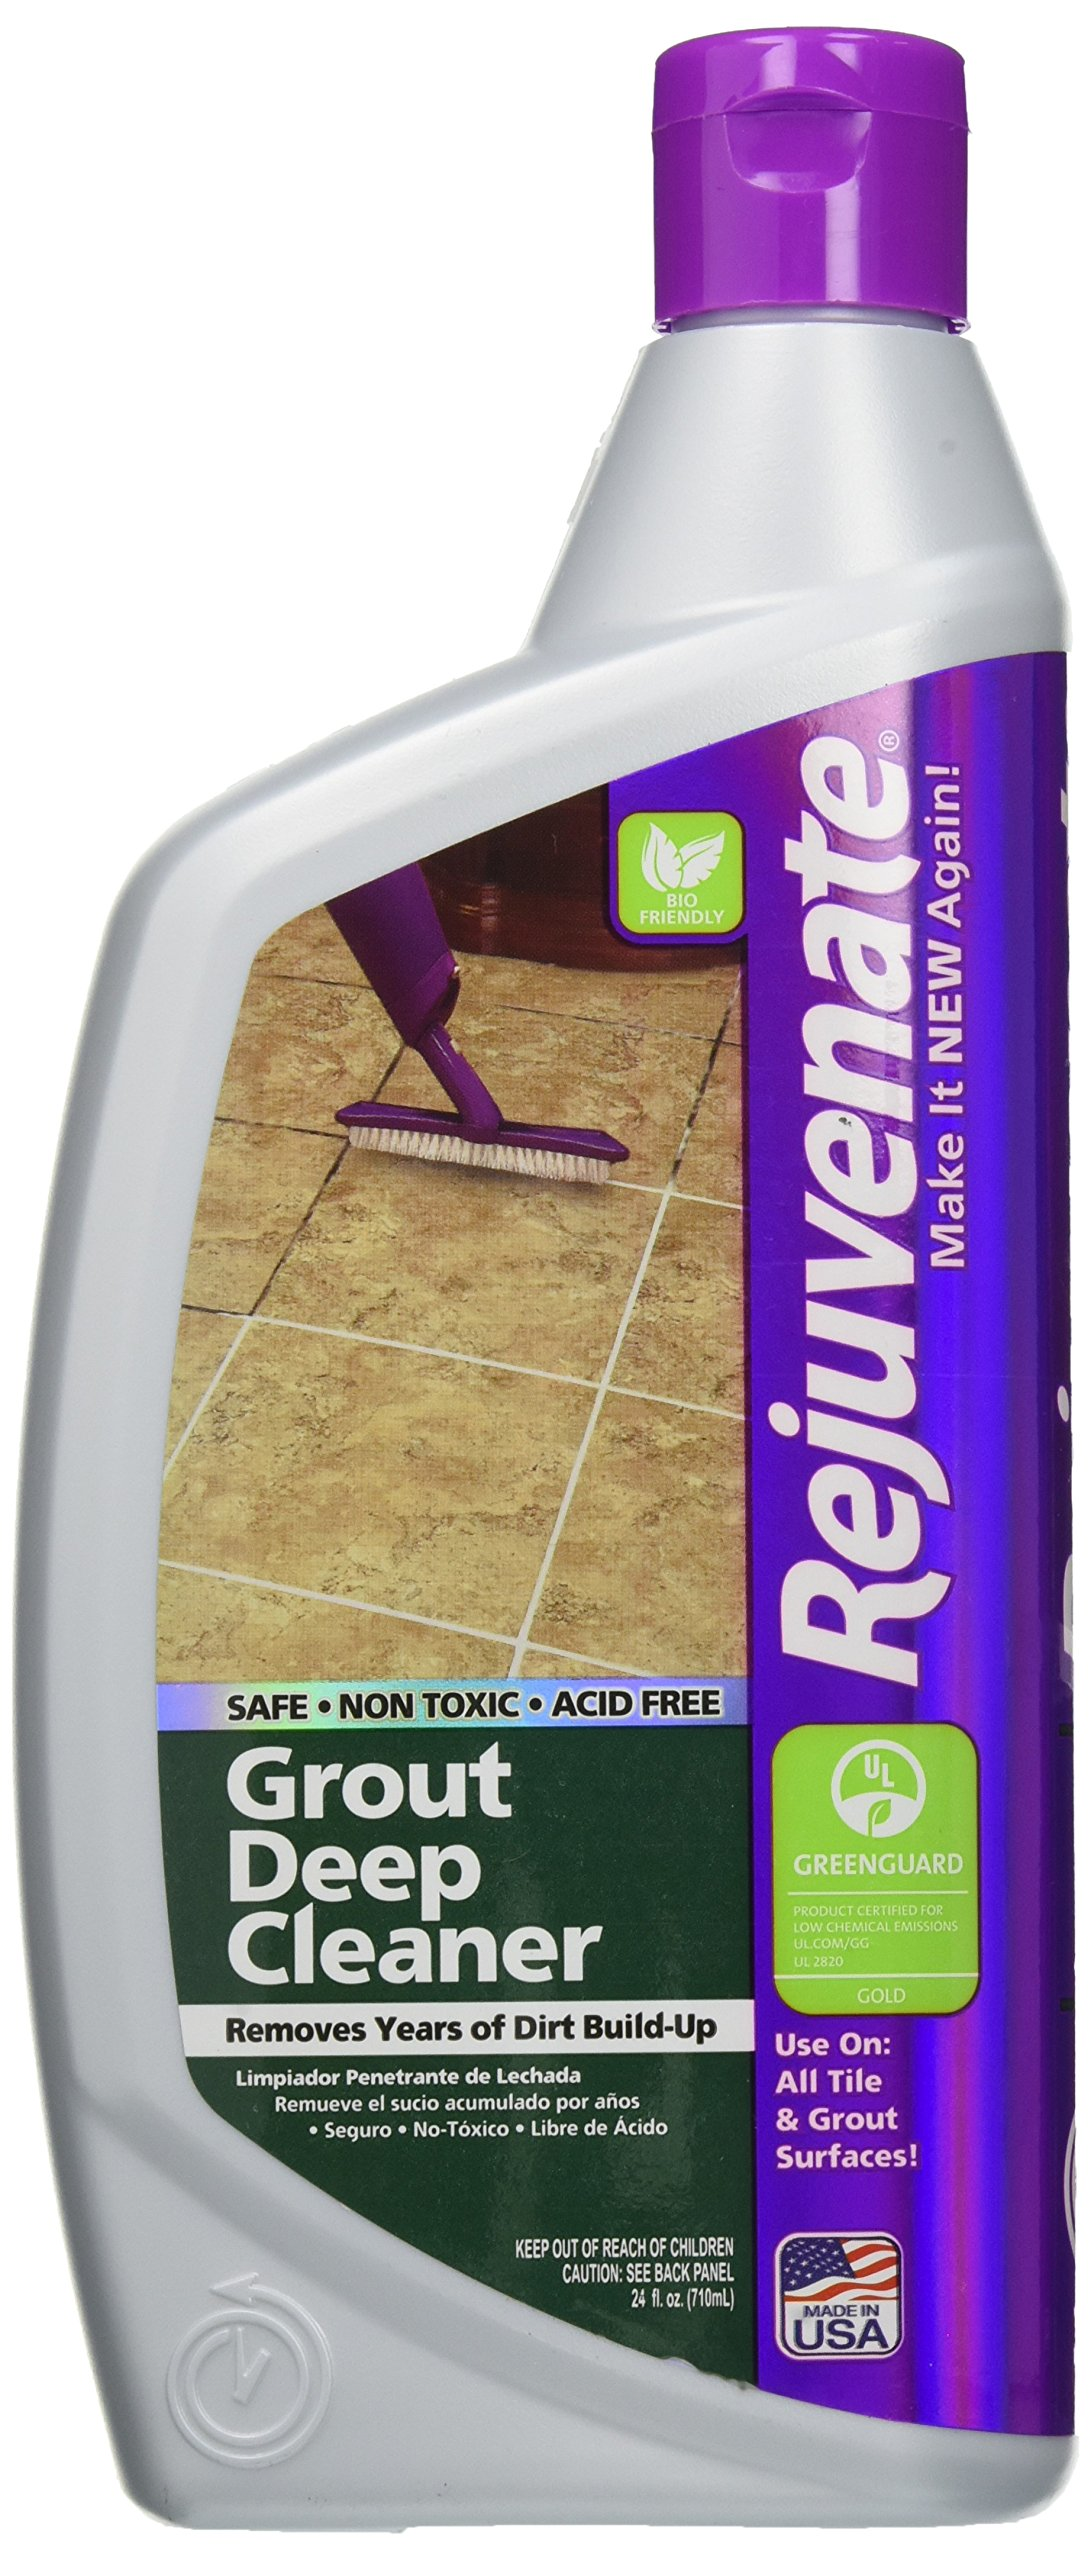 Rejuvenate Grout Deep Cleaner – Safe Non-Toxic Cleaning Formula Instantly Removes Years of Dirt Build-Up to Restore Grout to the Original Color – Non-Toxic – 24 Ounce